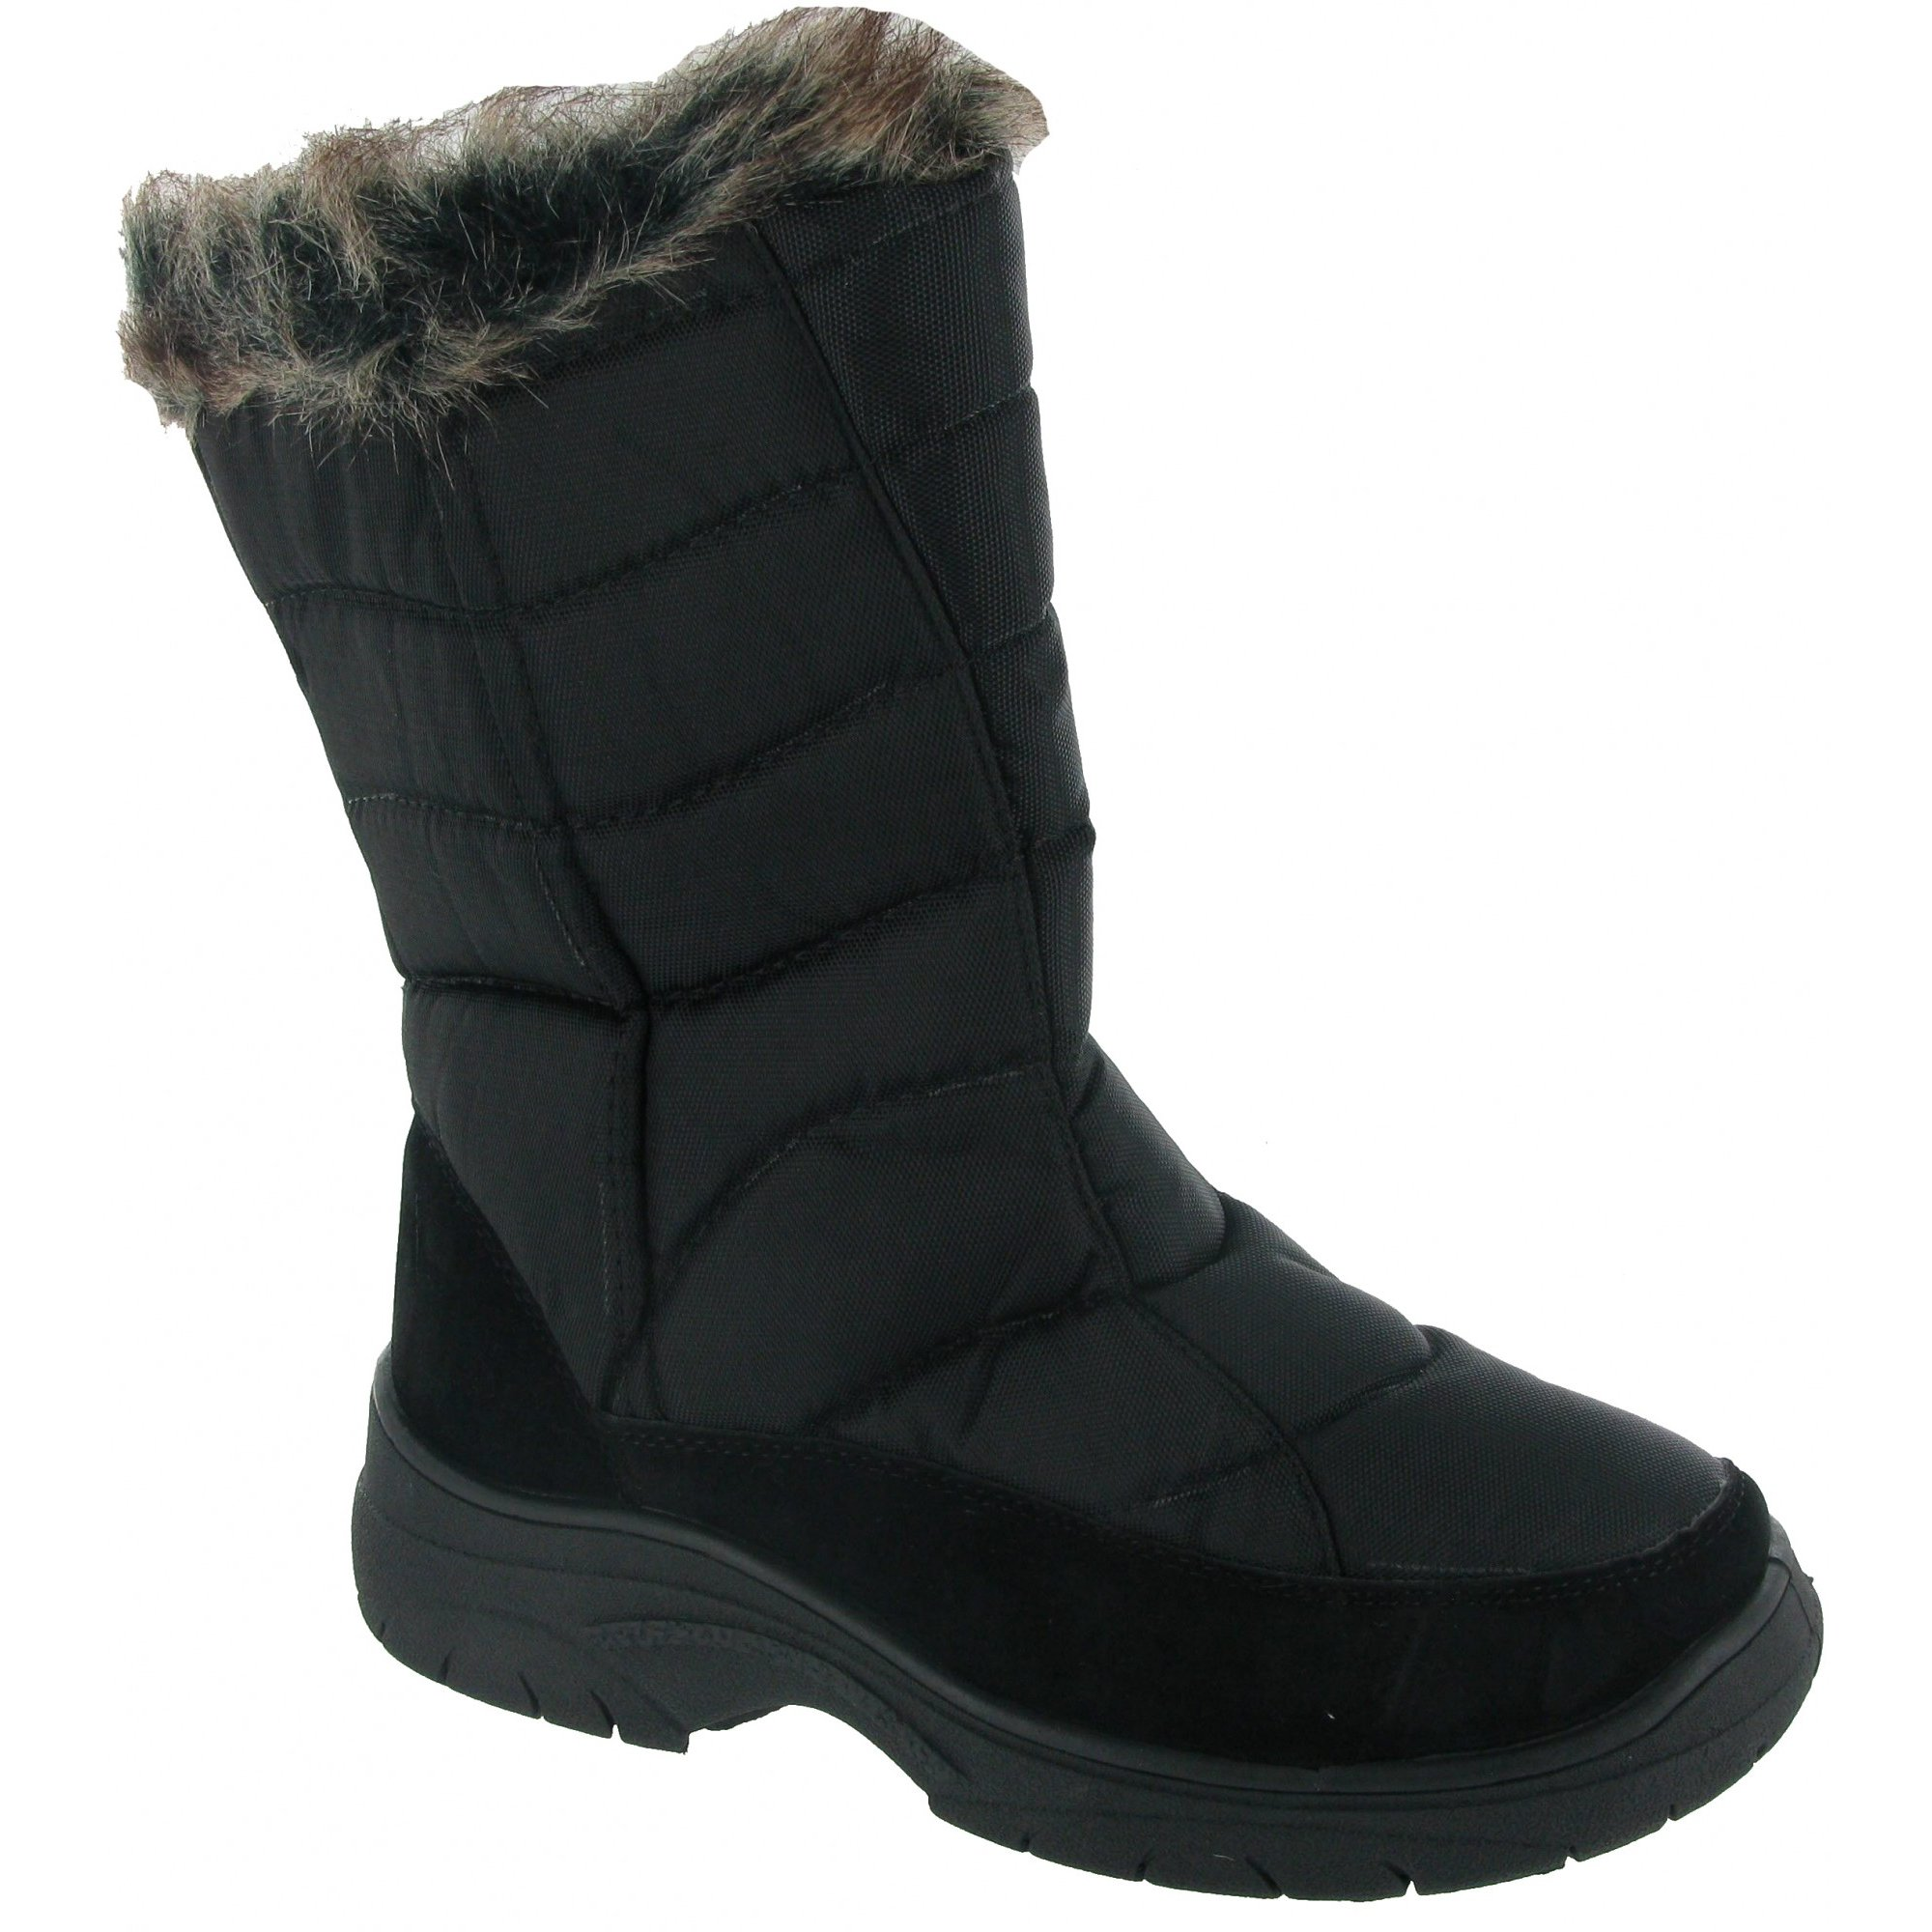 Womens Snow Boots On Clearance - Boot Yc